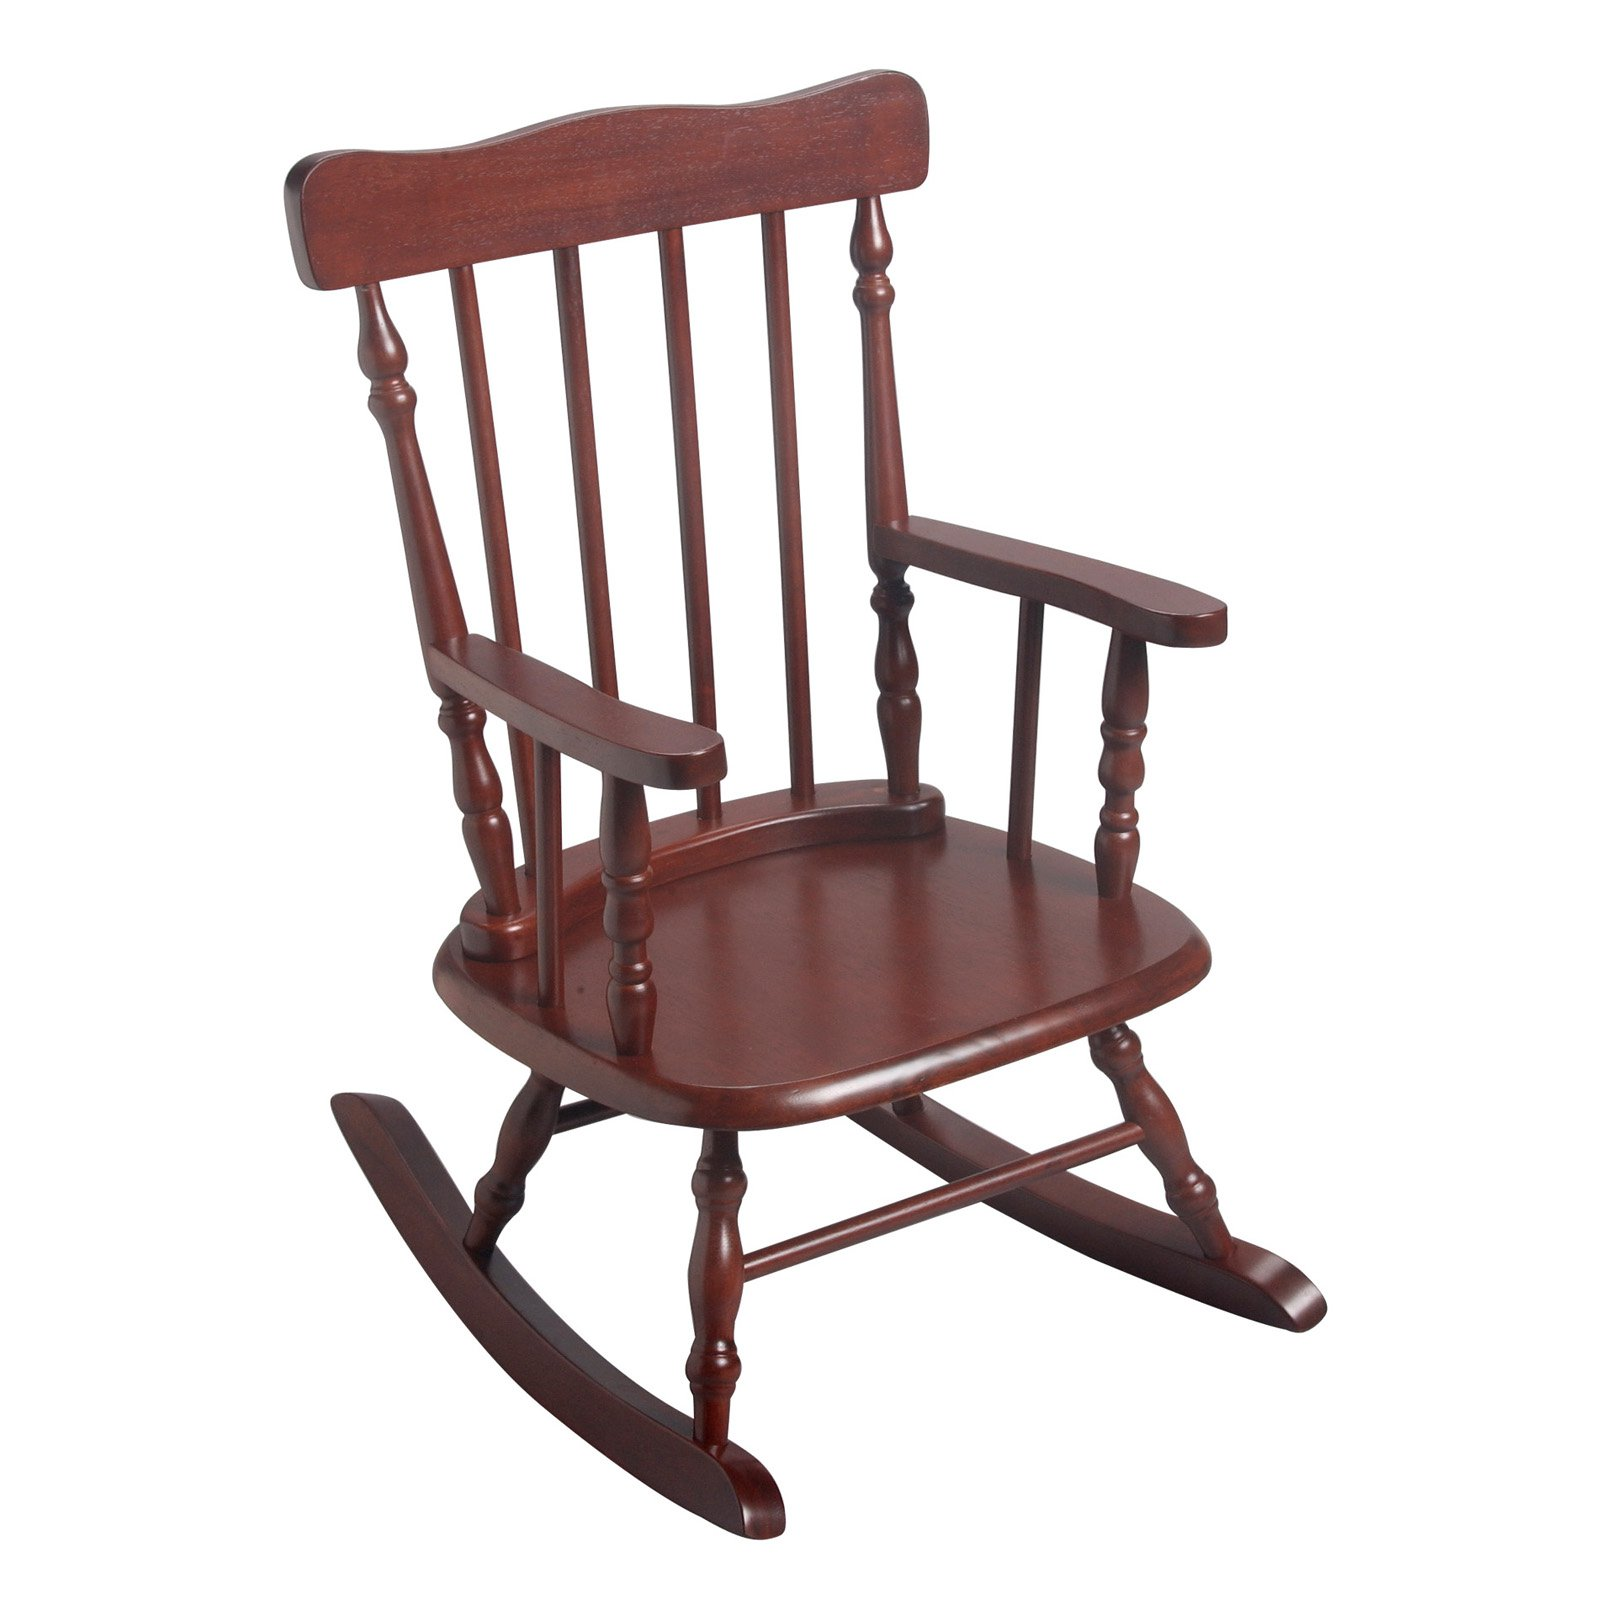 Gift Mark Childrens 3700 Rocking Chair Cherry by Giftmark